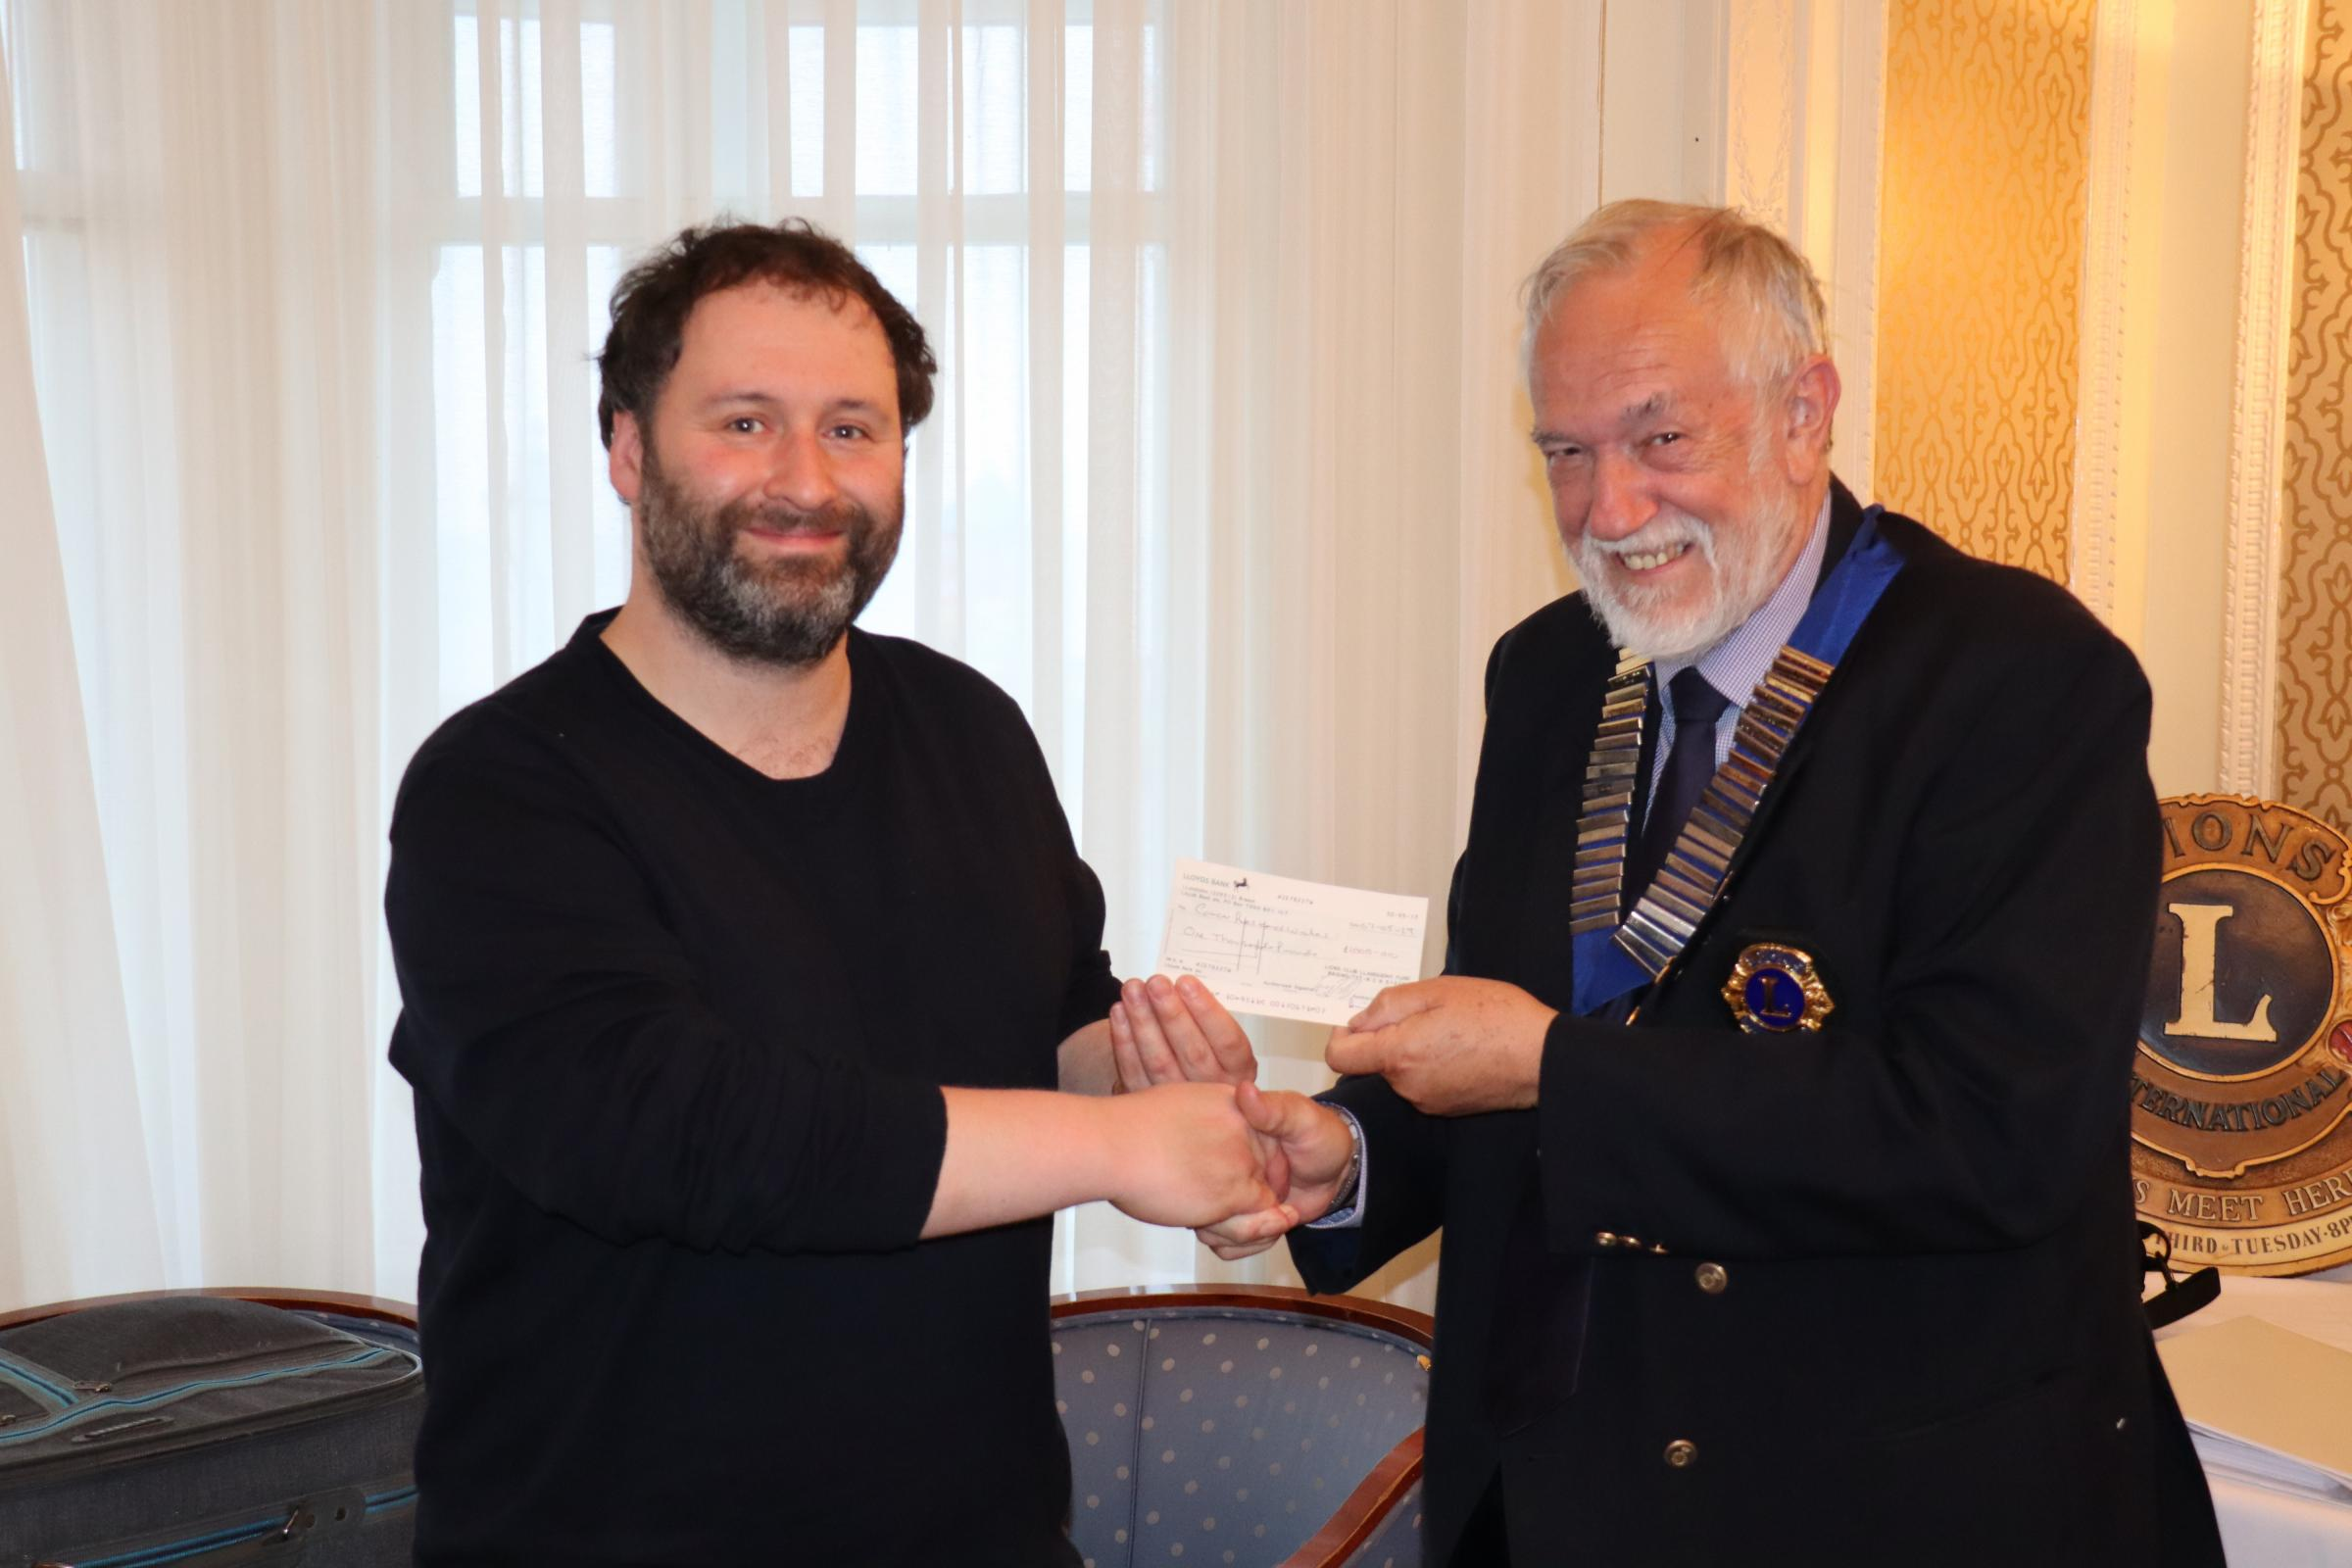 Dr Christopher Staples receives the award from Lions Club President Graham Shimmin